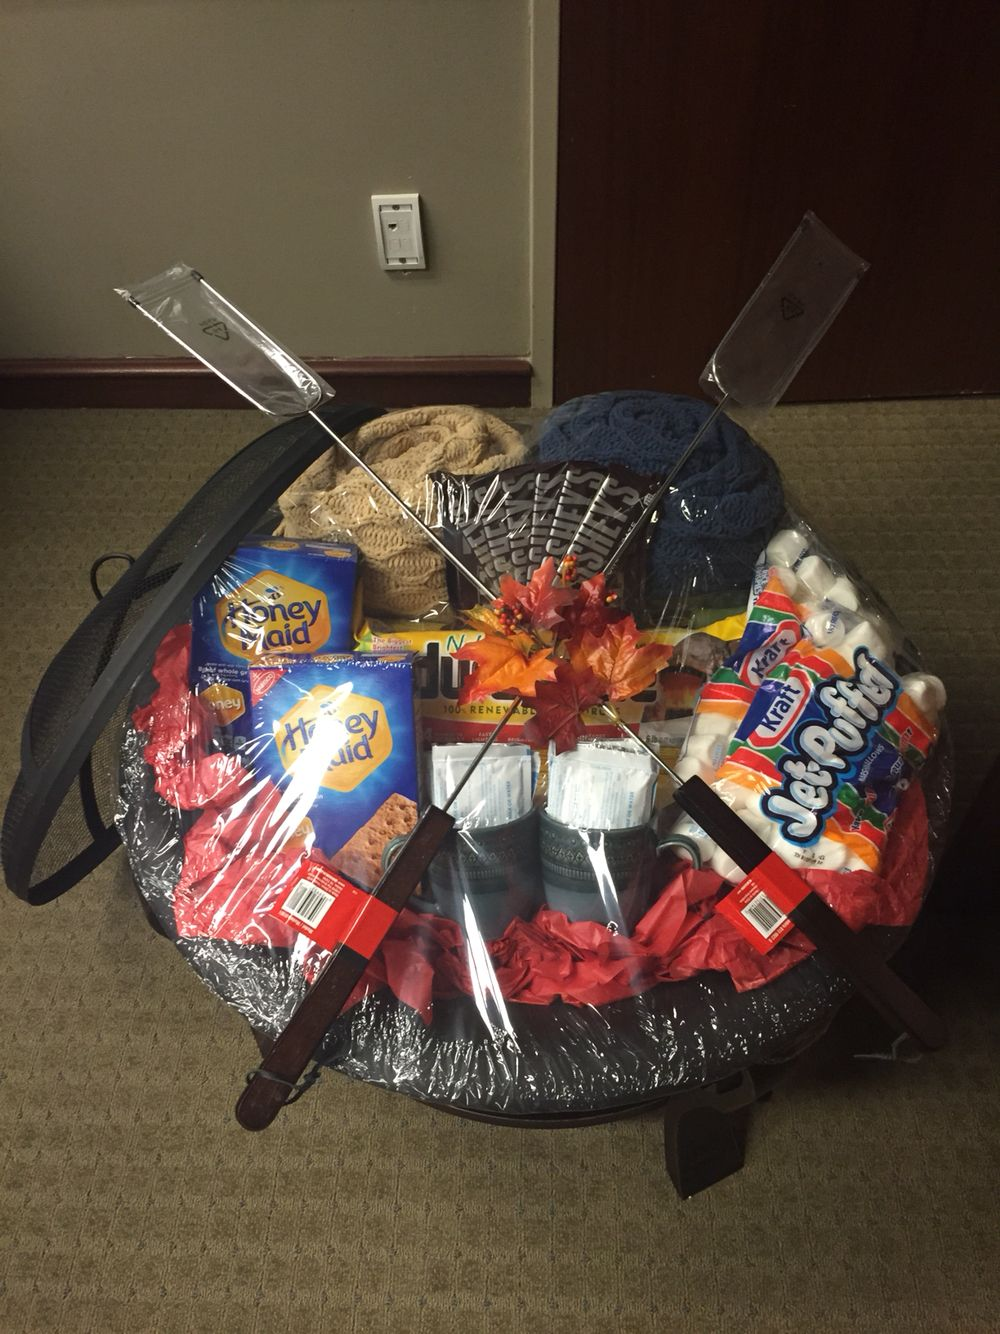 25 well-themed gift basket ideas for any ocassion | interact club